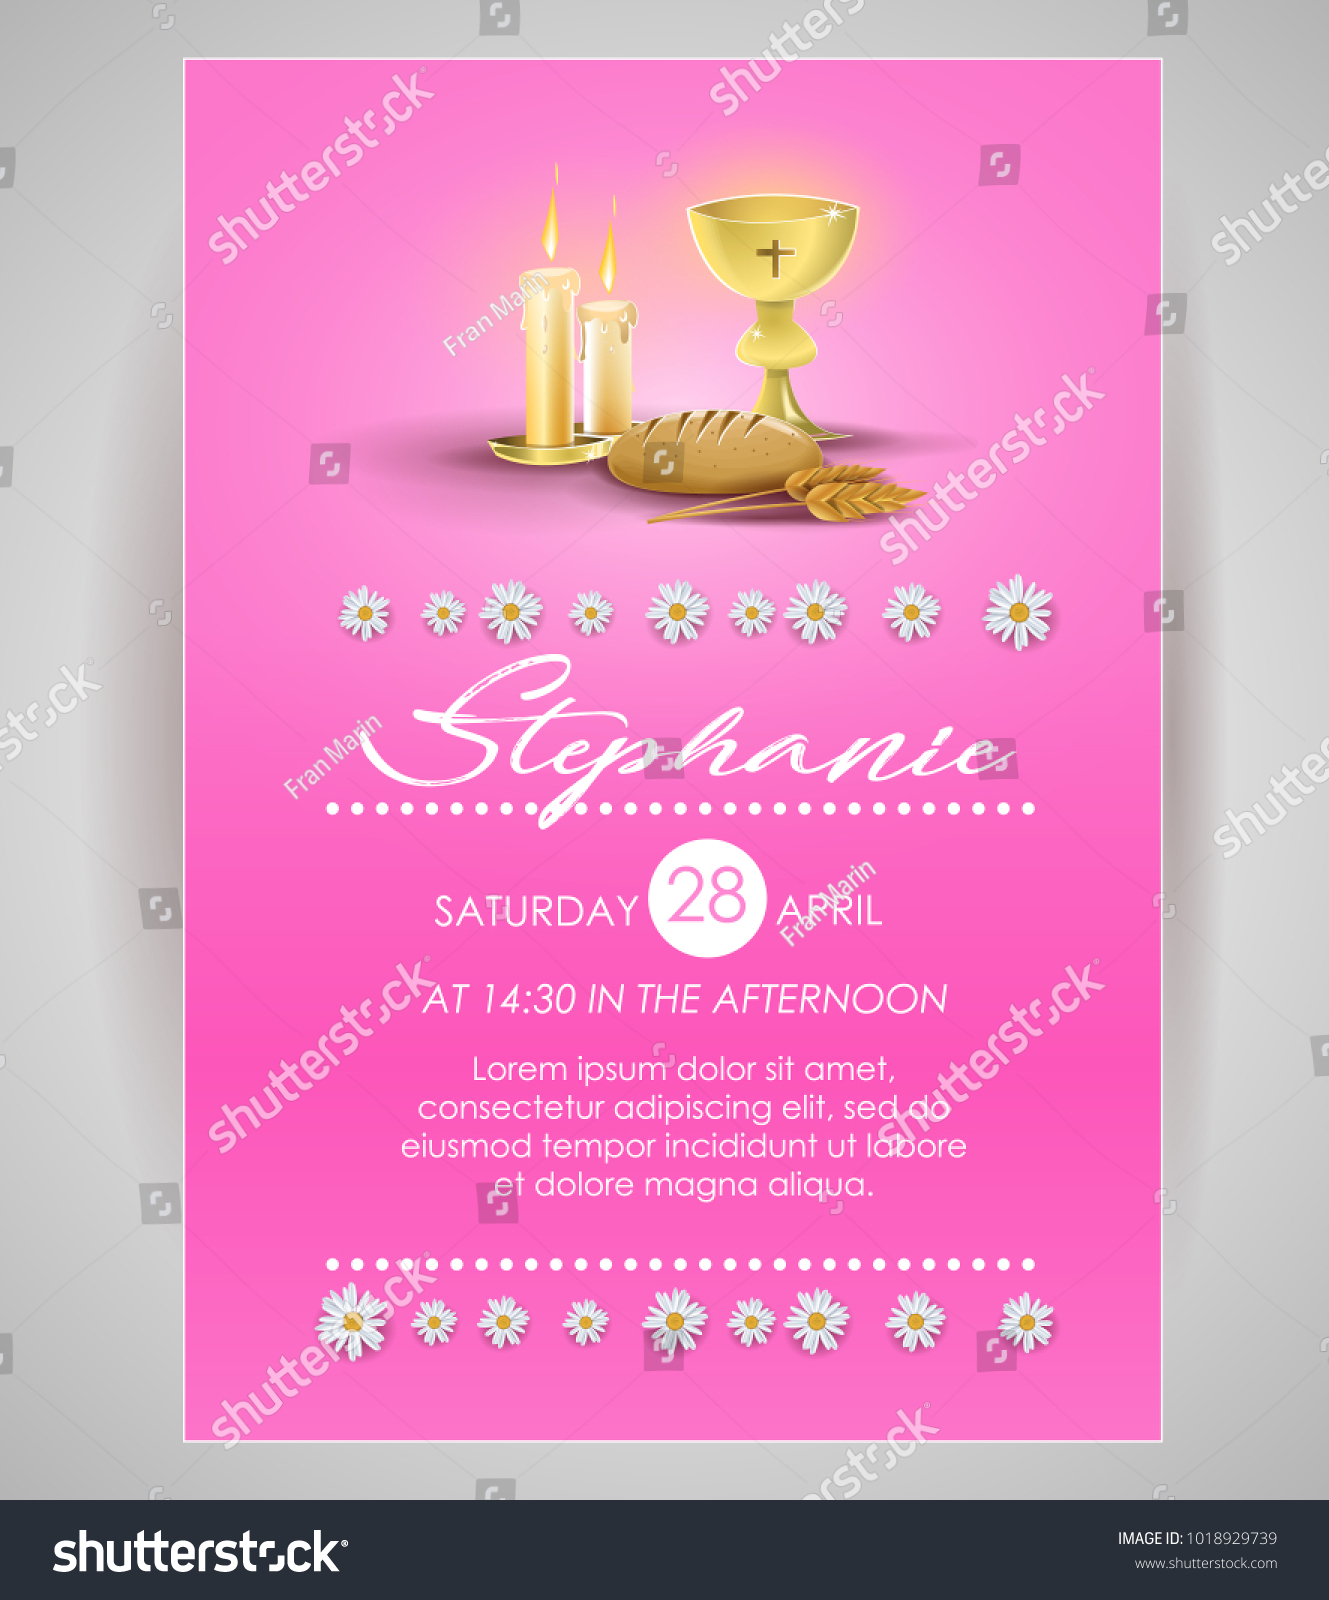 Pink Religious Invitation Card Invitation First Stock Photo Photo